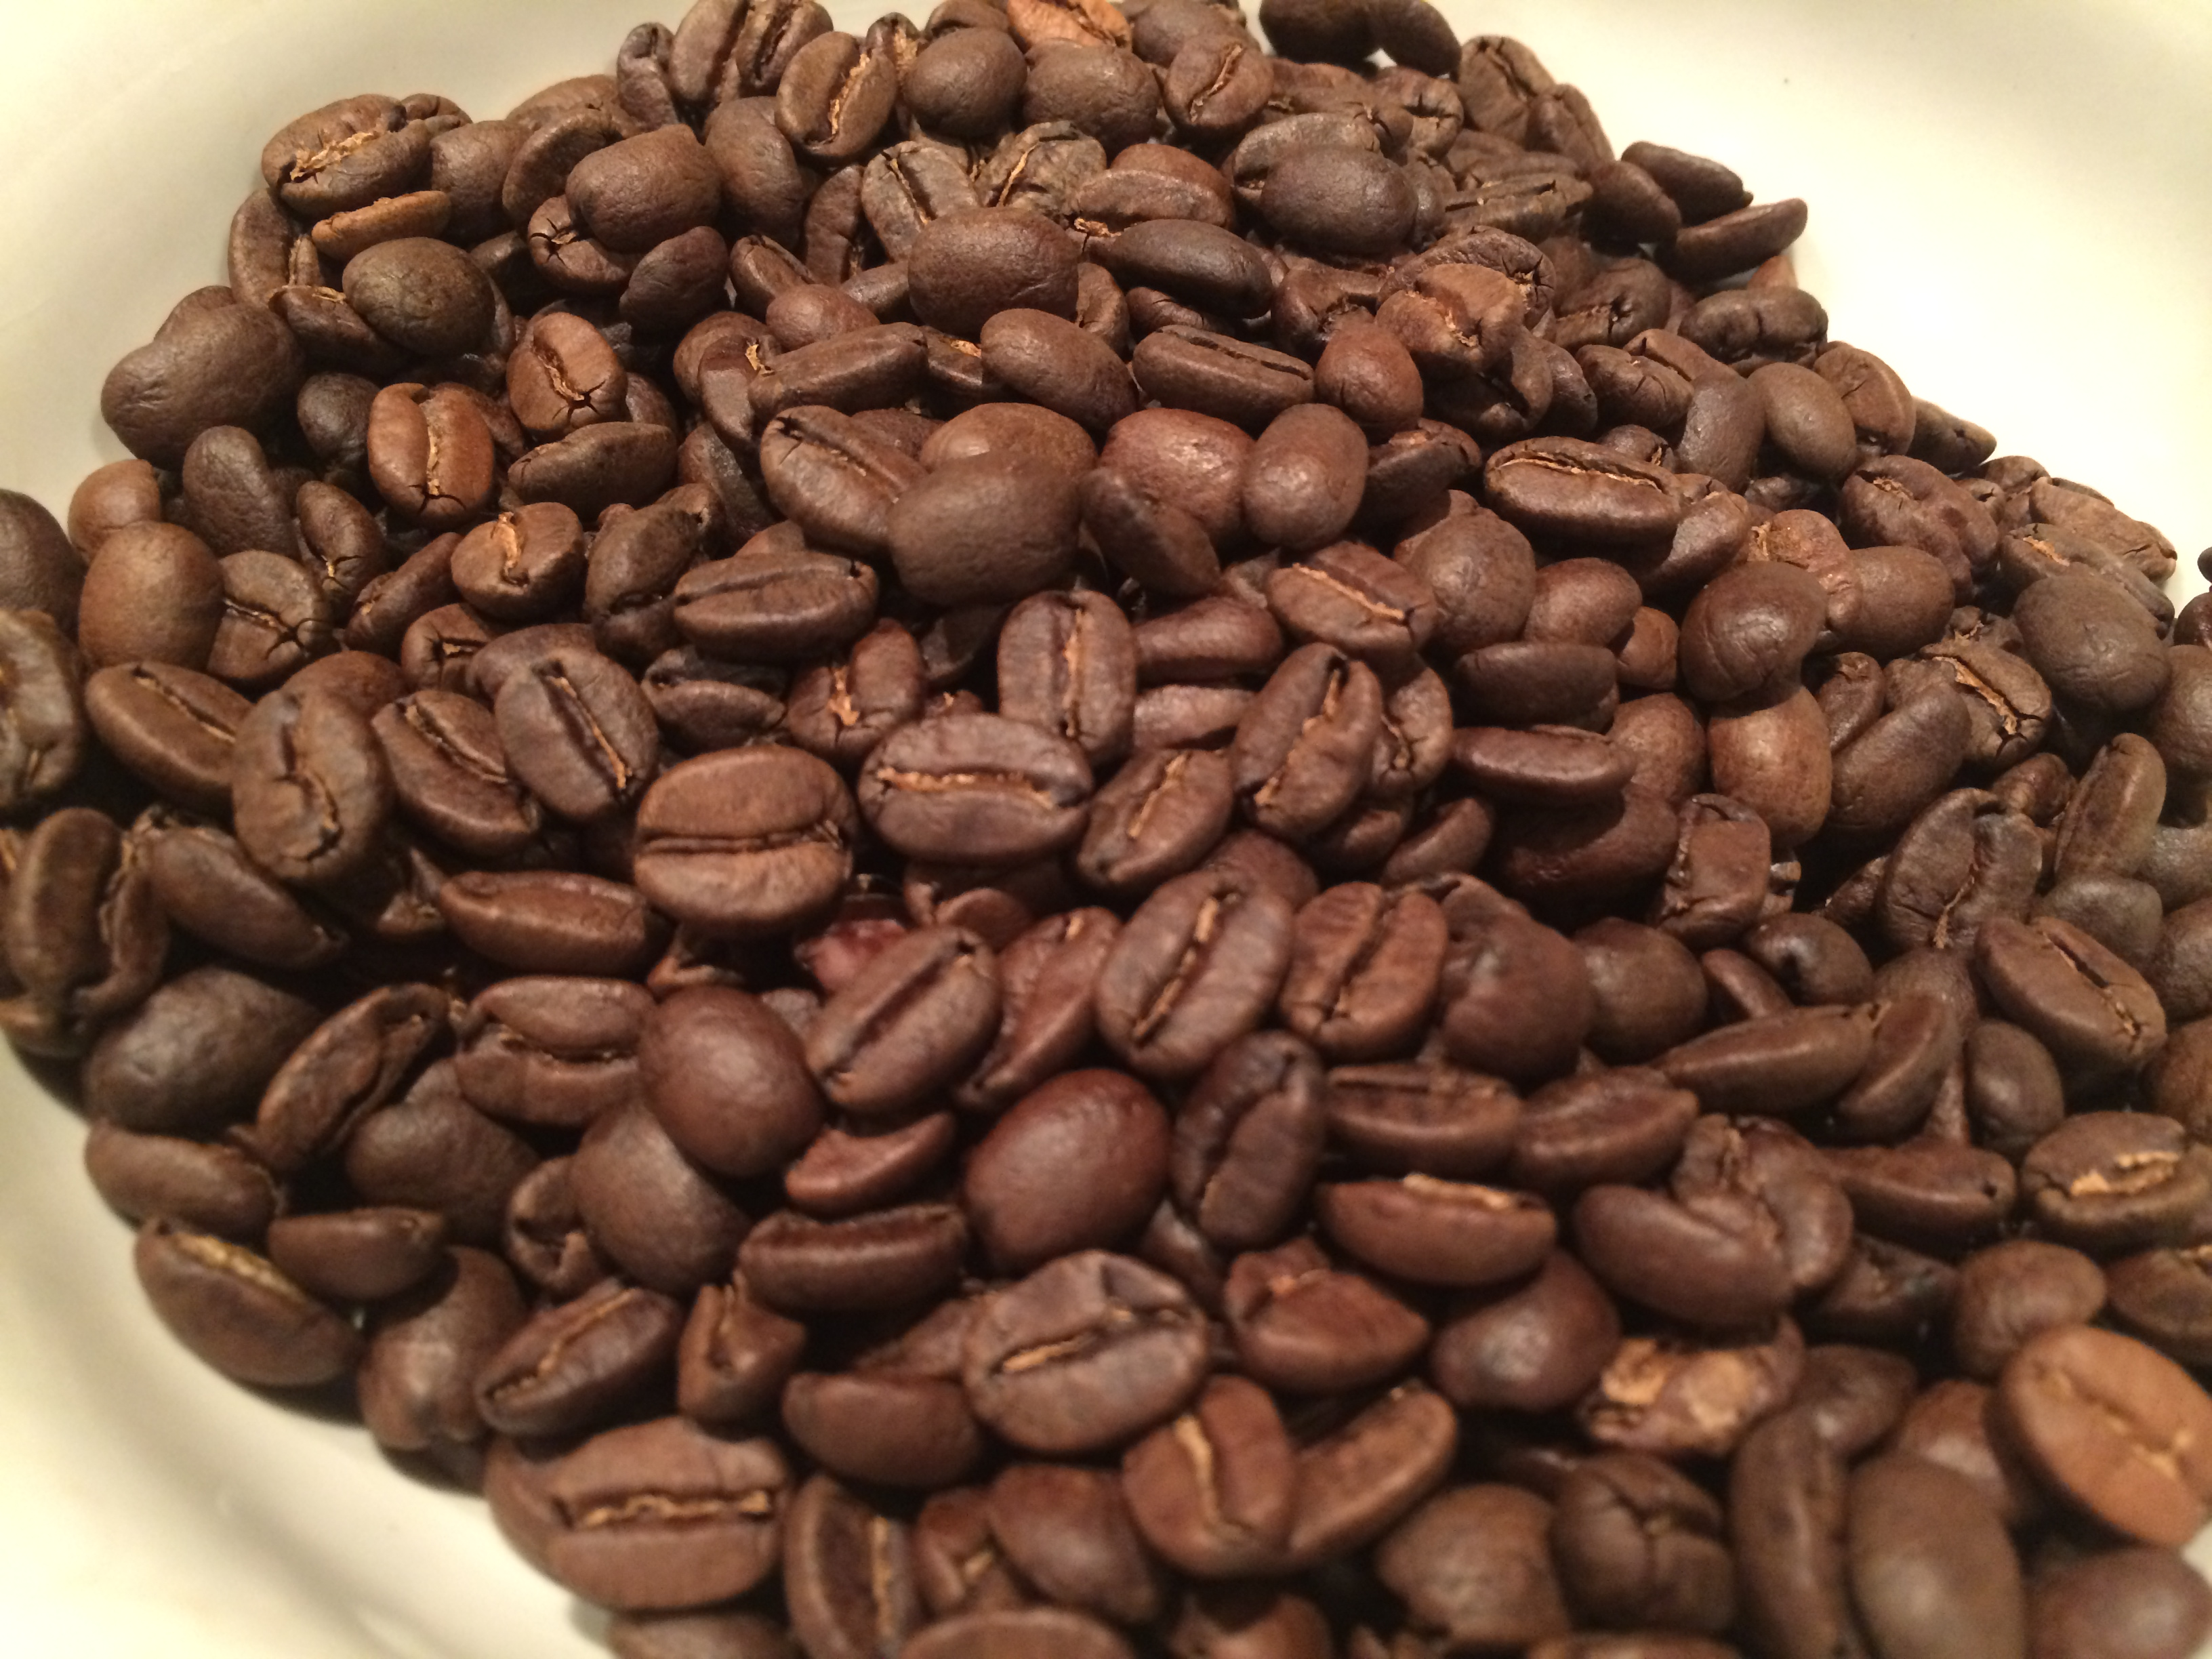 Roasting Coffee At Home - From Green Beans To Fresh Roasted Coffee ...